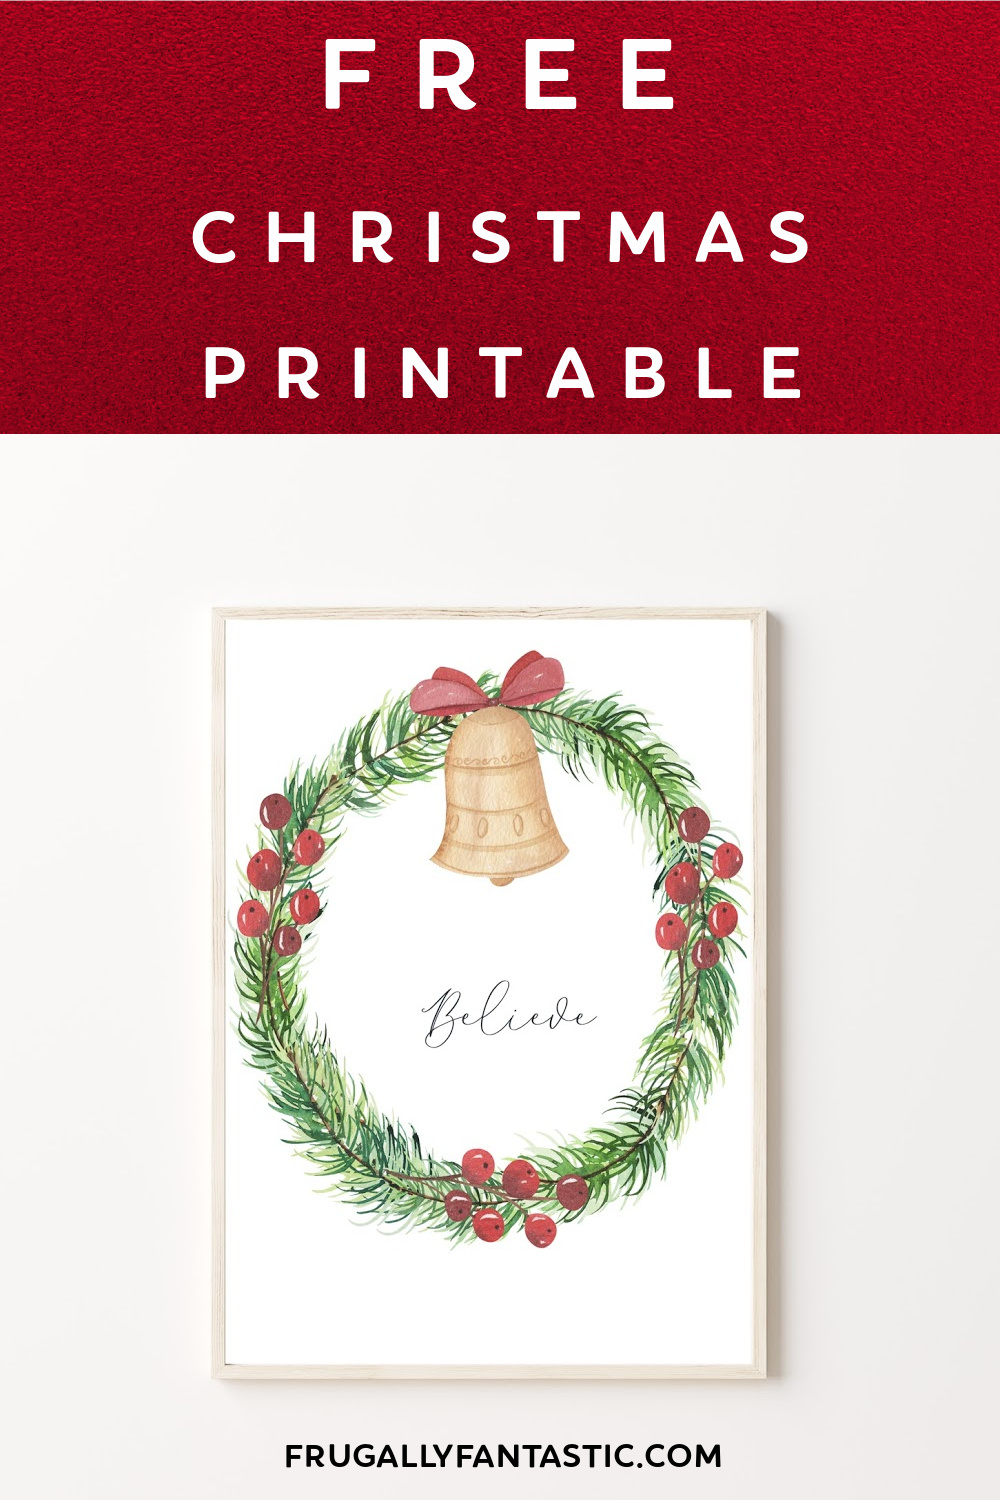 Free Christmas Watercolor Print FrugallyFantastic.com